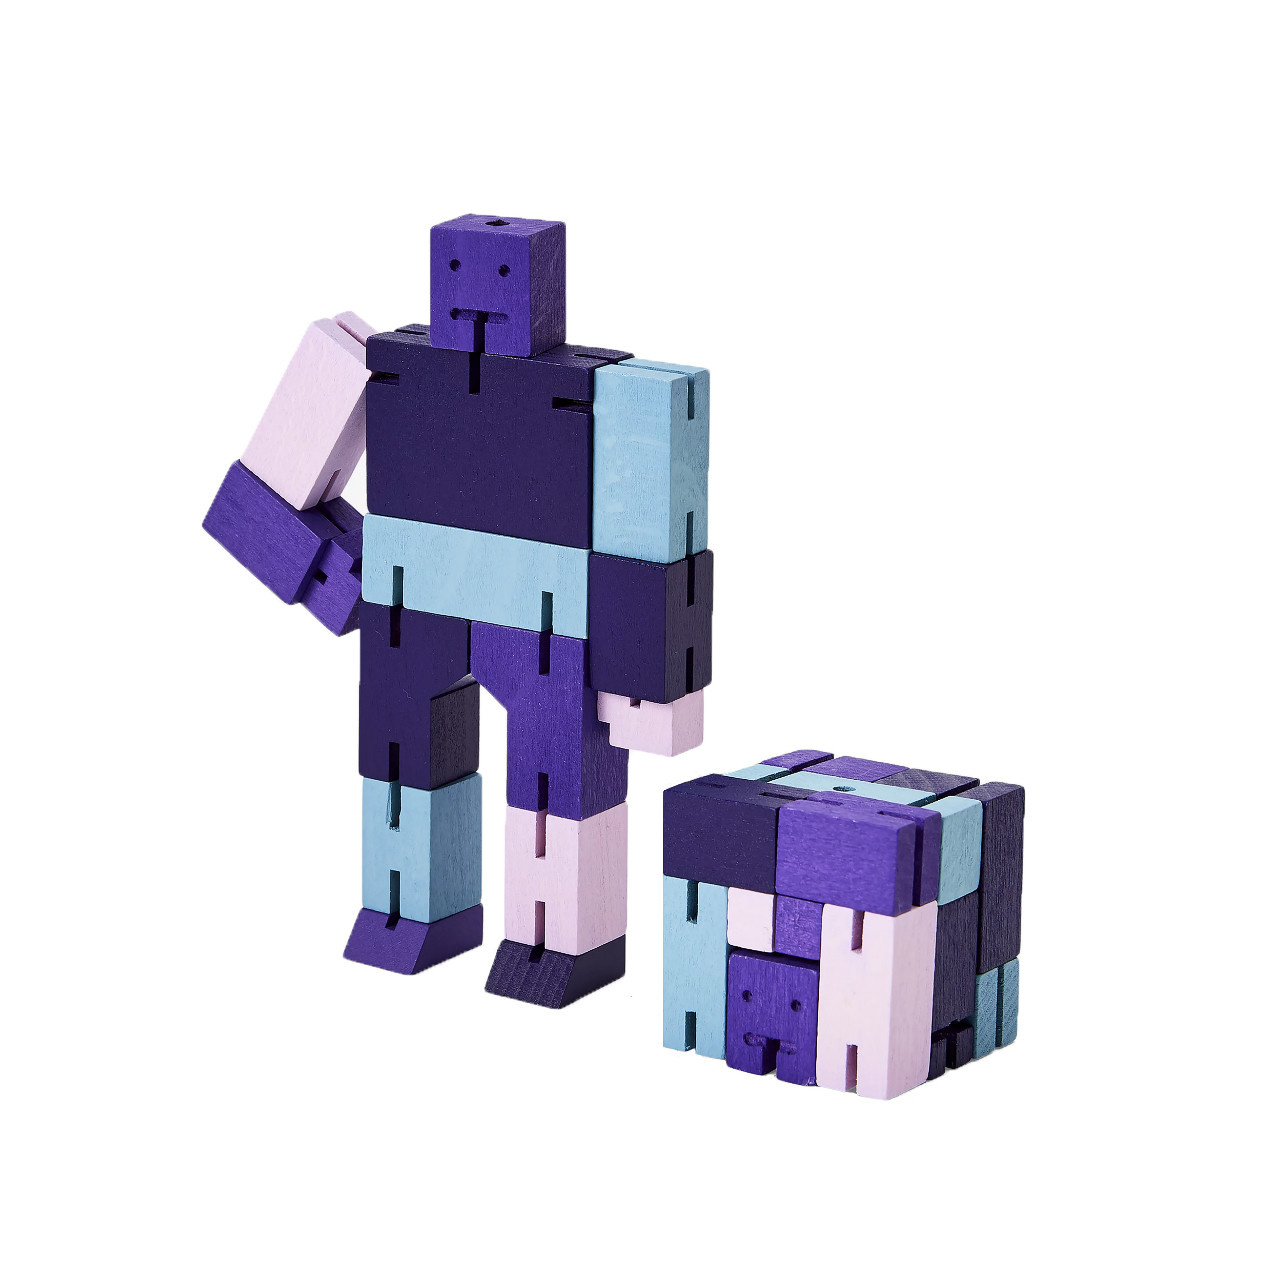 Areaware Cubebot Capsule Small - Purple Multi